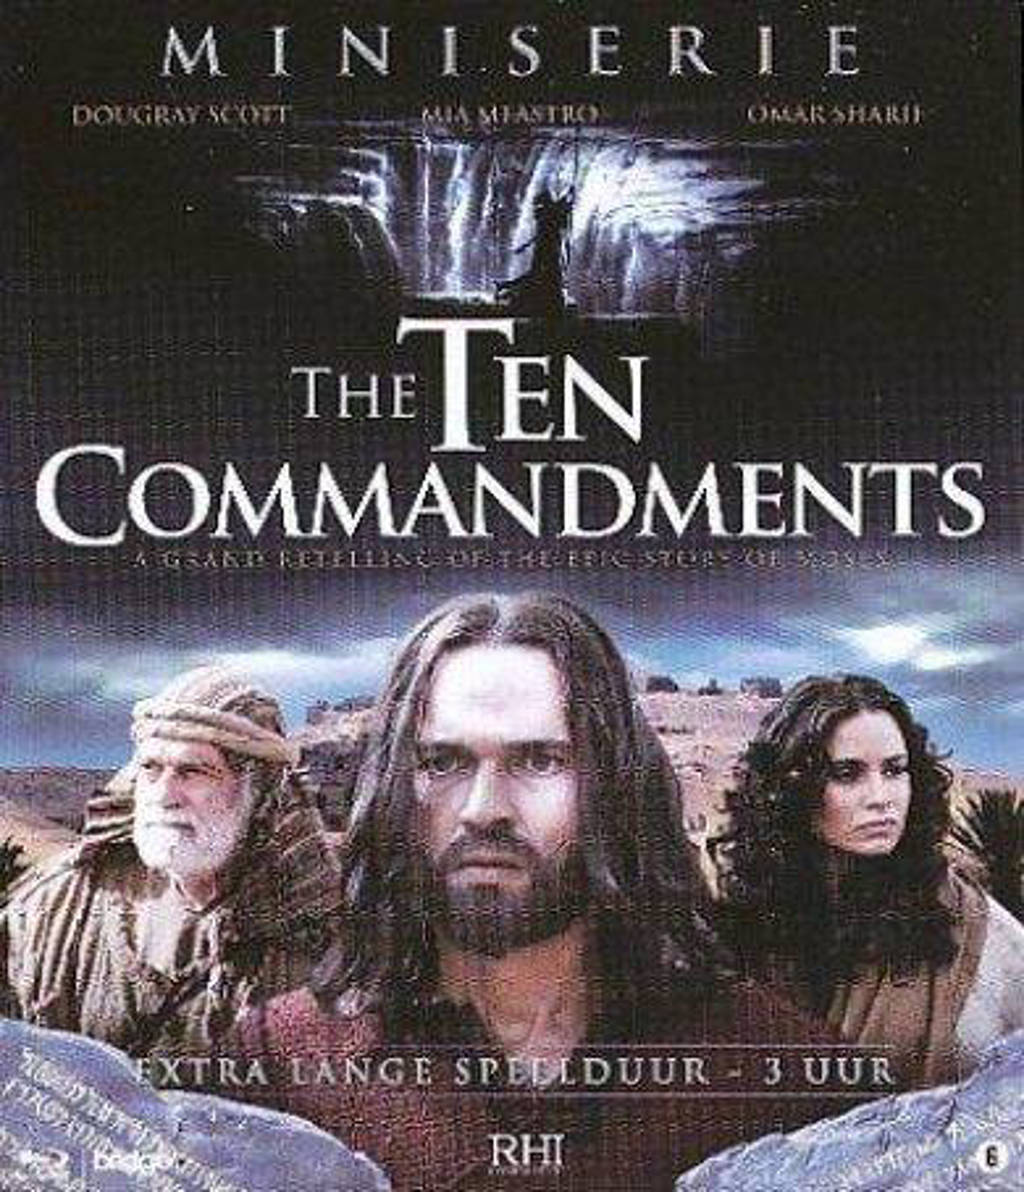 Ten commandments (Blu-ray)